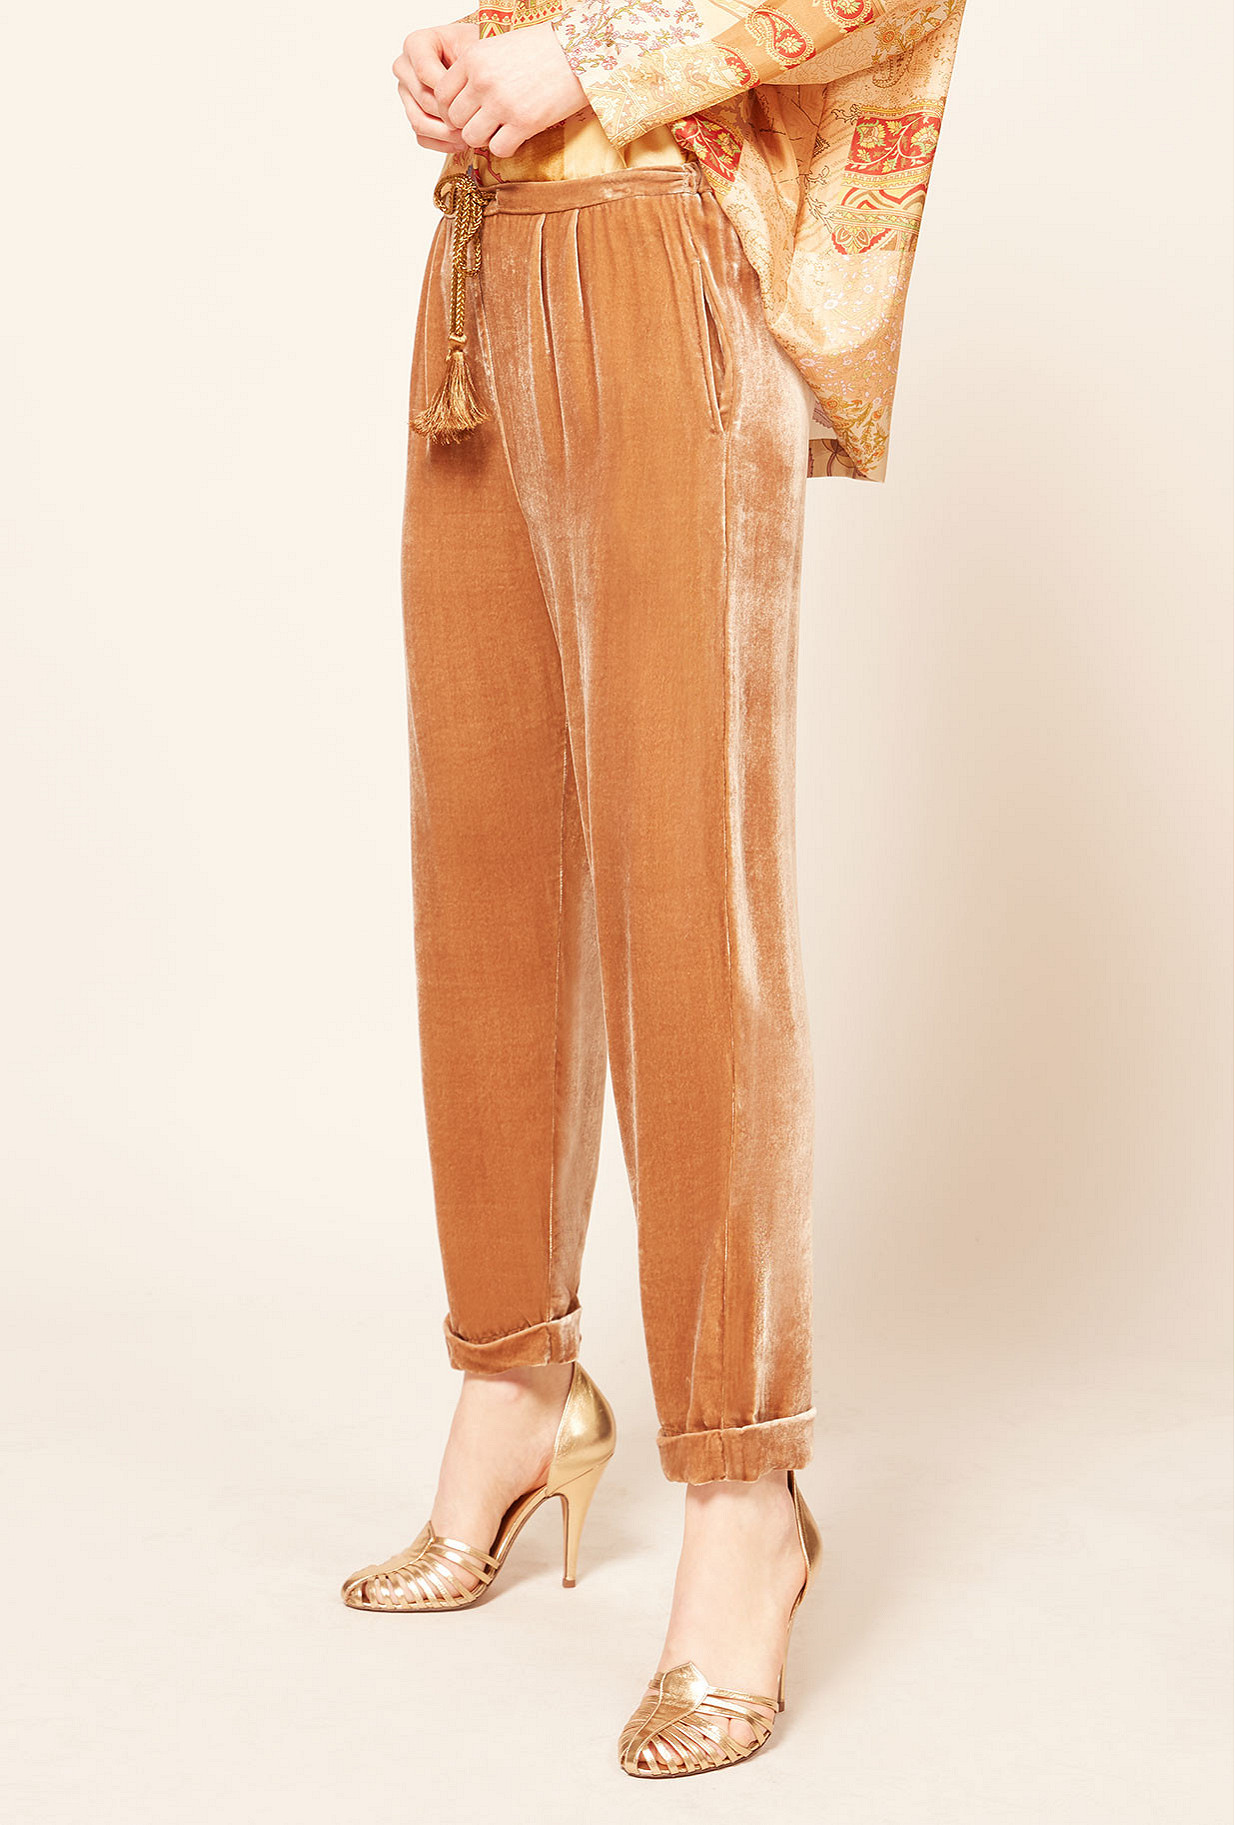 Nude pant Spay